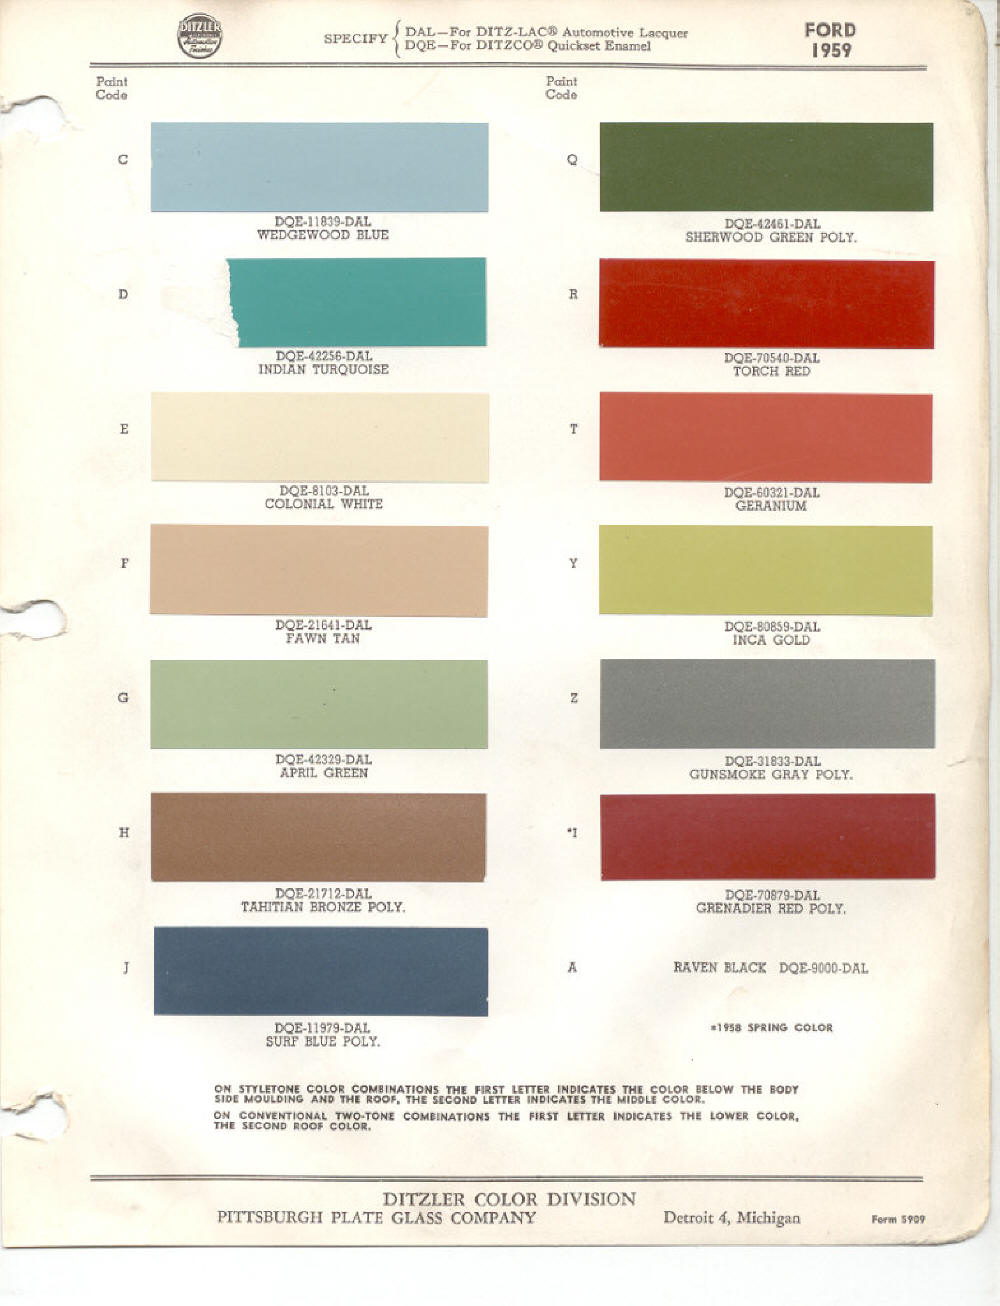 1959 Ford Paint Chips